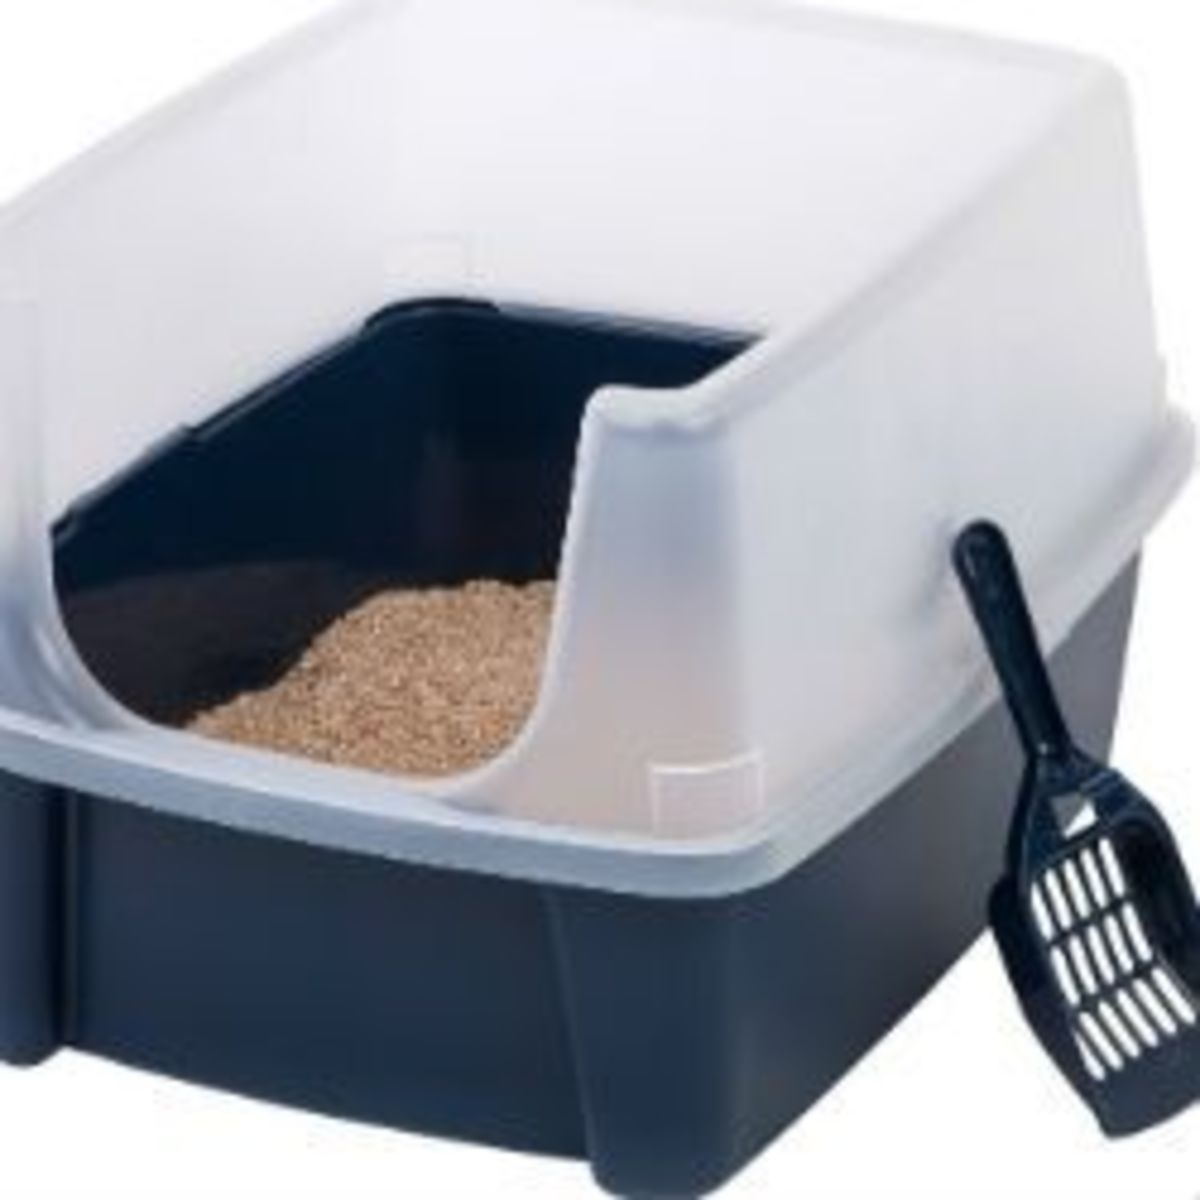 Best Litter Box For Odor Control & Smells